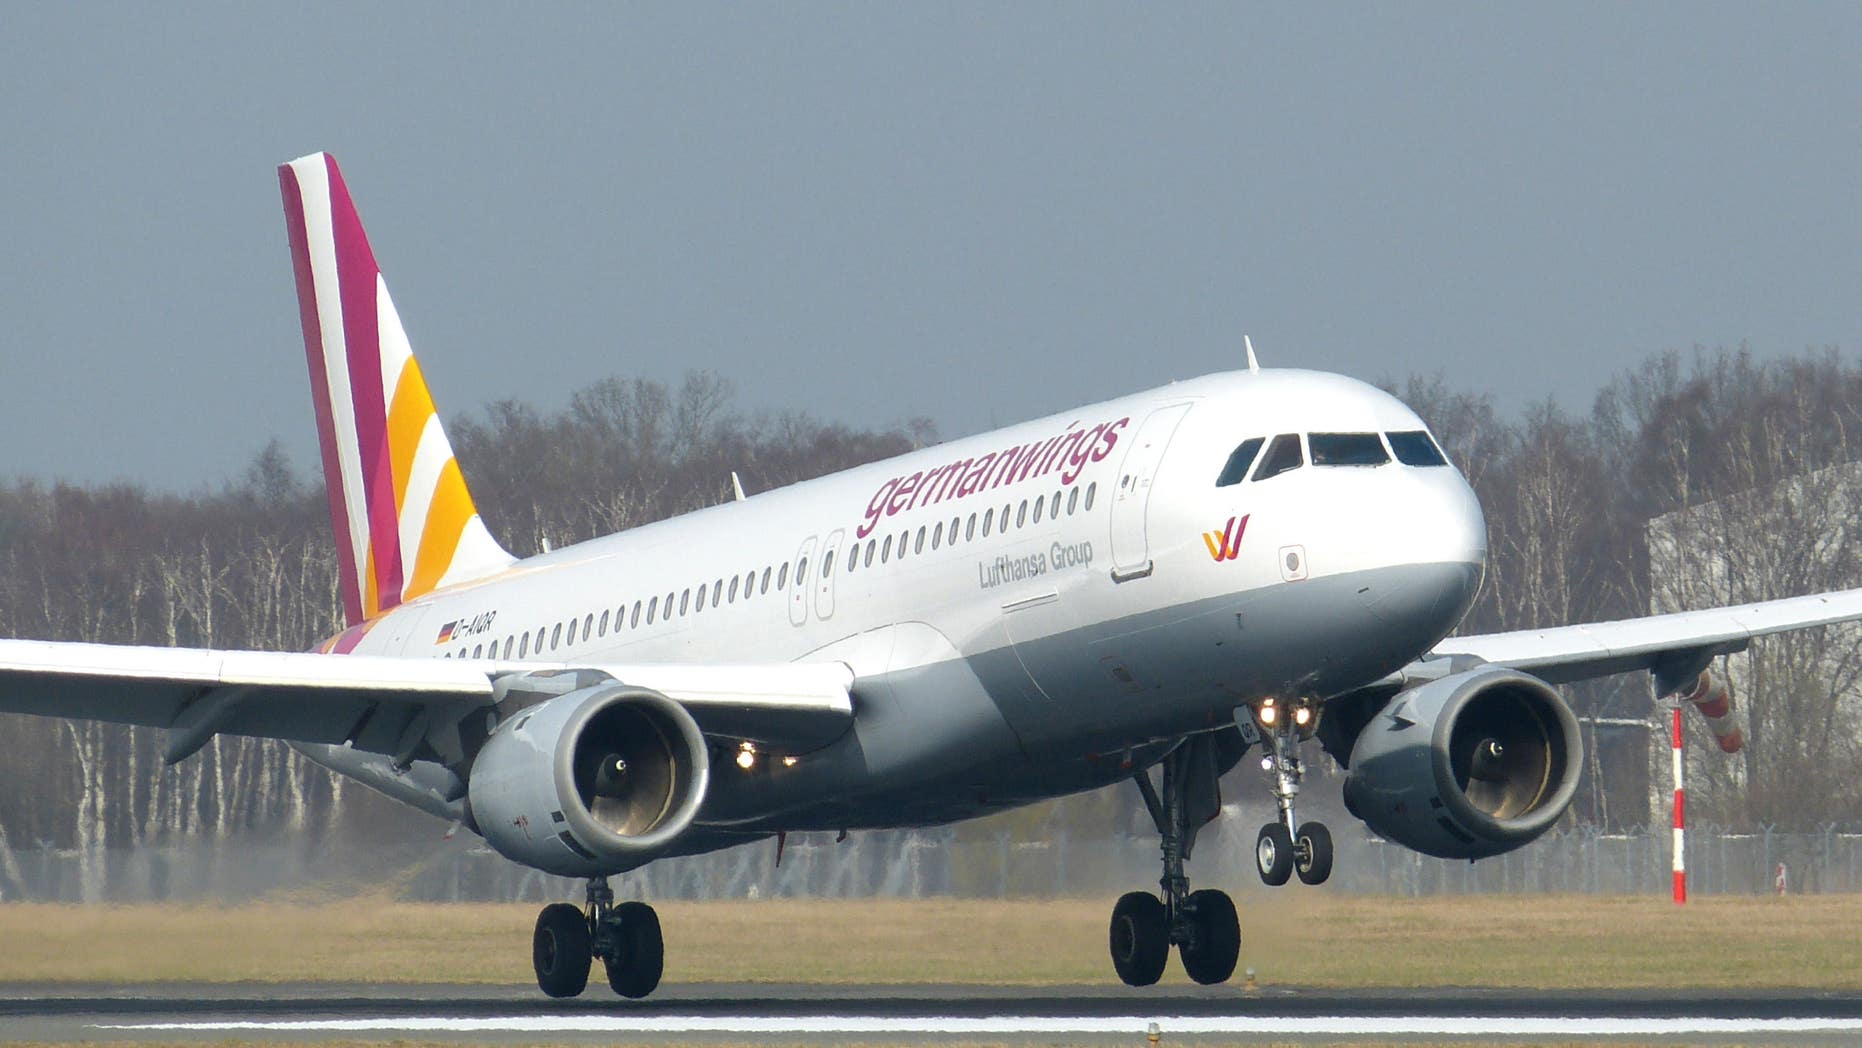 An Airbus A320 of German airline Germanwings as it lands at the airport in Hamburg, northern Germany.